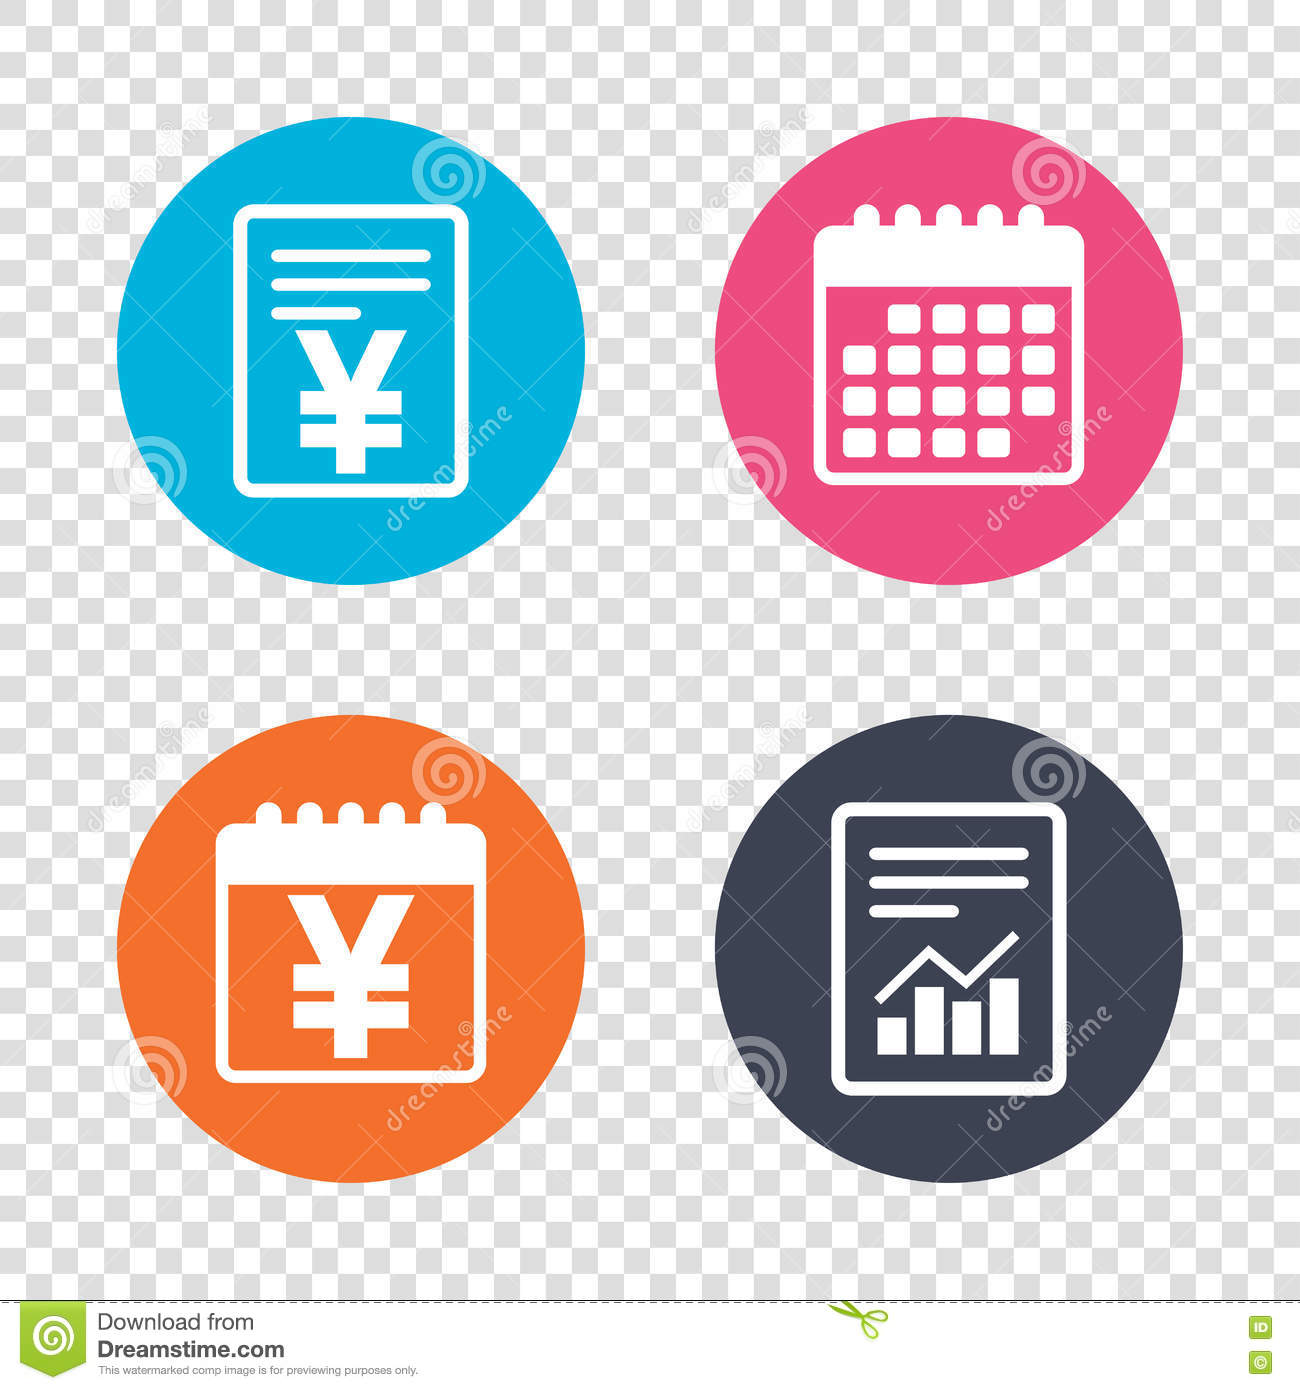 Yen Sign Icon Jpy Currency Symbol Stock Vector Illustration Of